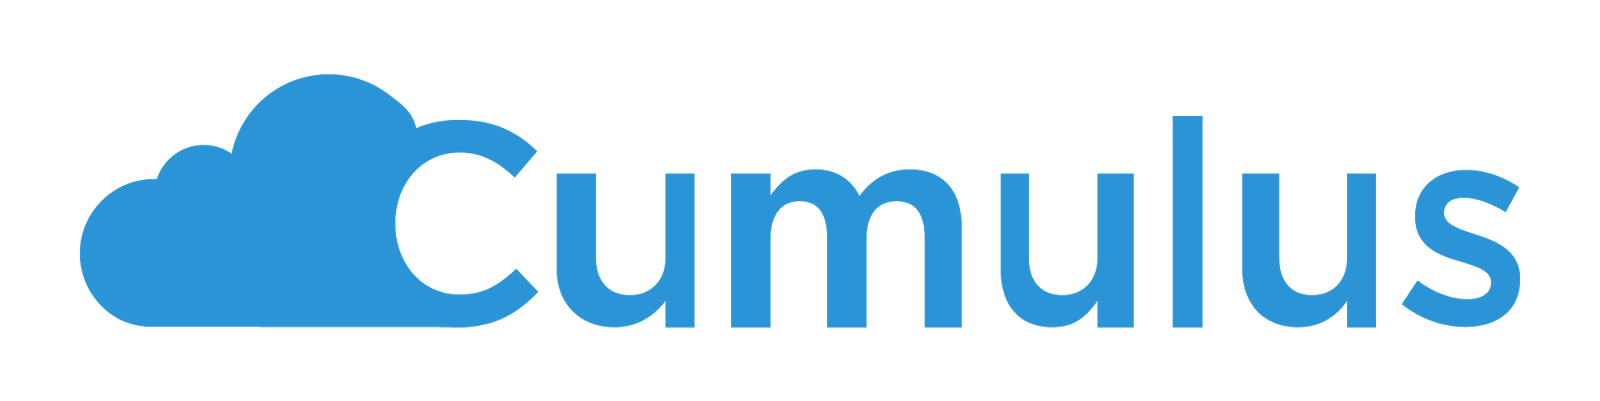 The logo for Cumulus Bank, the fictitious bank in this story.